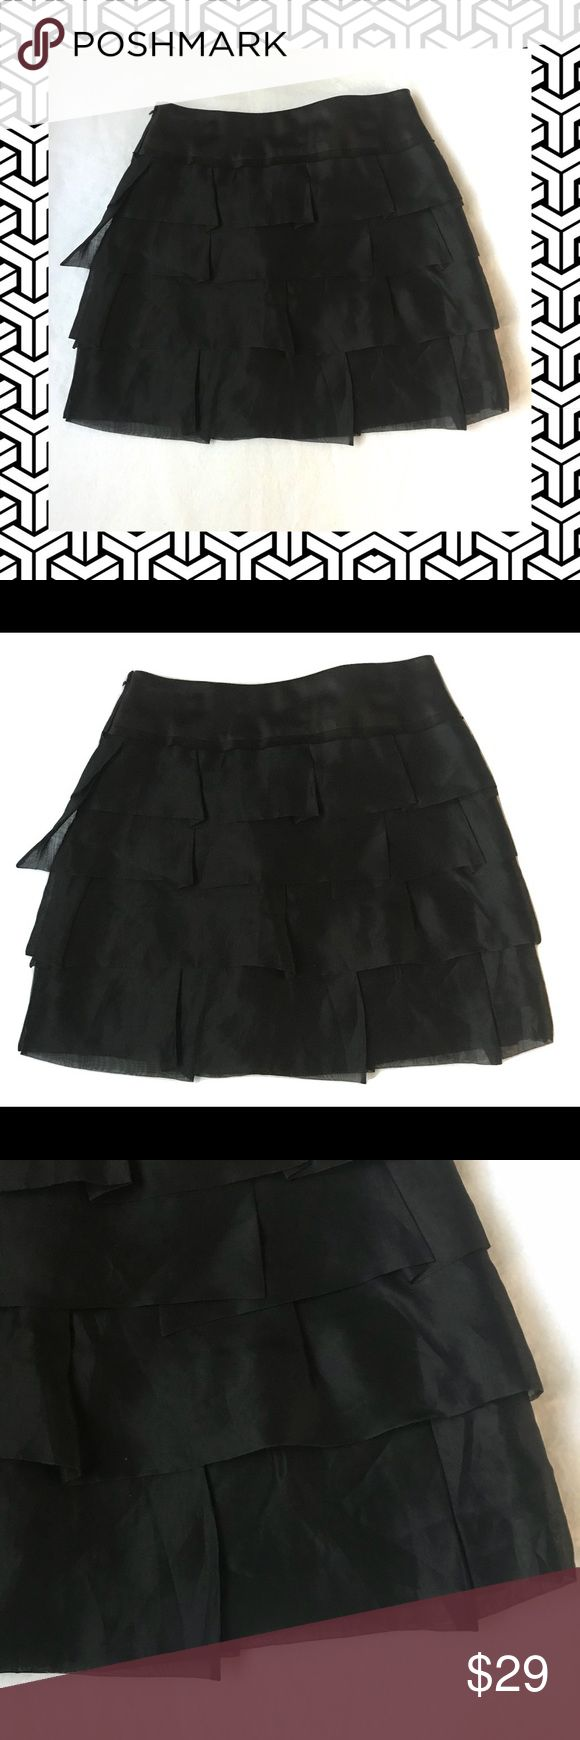 "BCBG MAXAZRIA 4 Tiered Layered Ruffled Mini Skirt BCBG MAXAZRIA 4 Tiered Layered Ruffled Mini Skirt 100% Silk Sheer  Super cute skirt. Side zippered. Sheer layers over lining. Dry clean.  **** Marked 12 but the skirt was resized to fit a number 4. She did a great job. You can't tell that the skirt was resized. Please check all the measurents. *****   Waist (laying flat): 28""  Length: 17"" BCBGMaxAzria Skirts Mini"